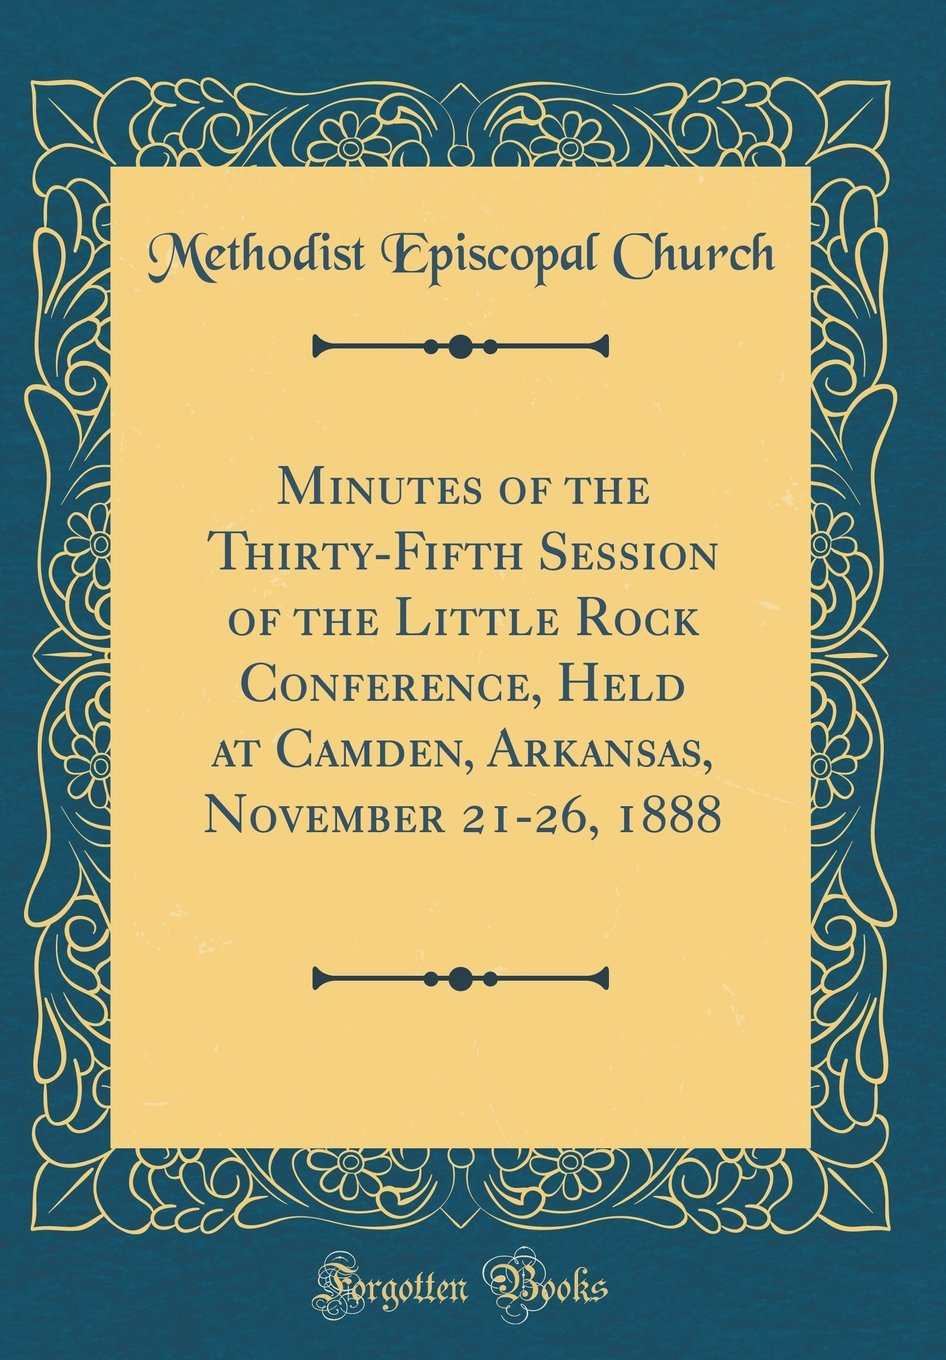 Minutes of the Thirty-Fifth Session of the Little Rock Conference, Held at Camden, Arkansas, November 21-26, 1888 (Classic Reprint) PDF